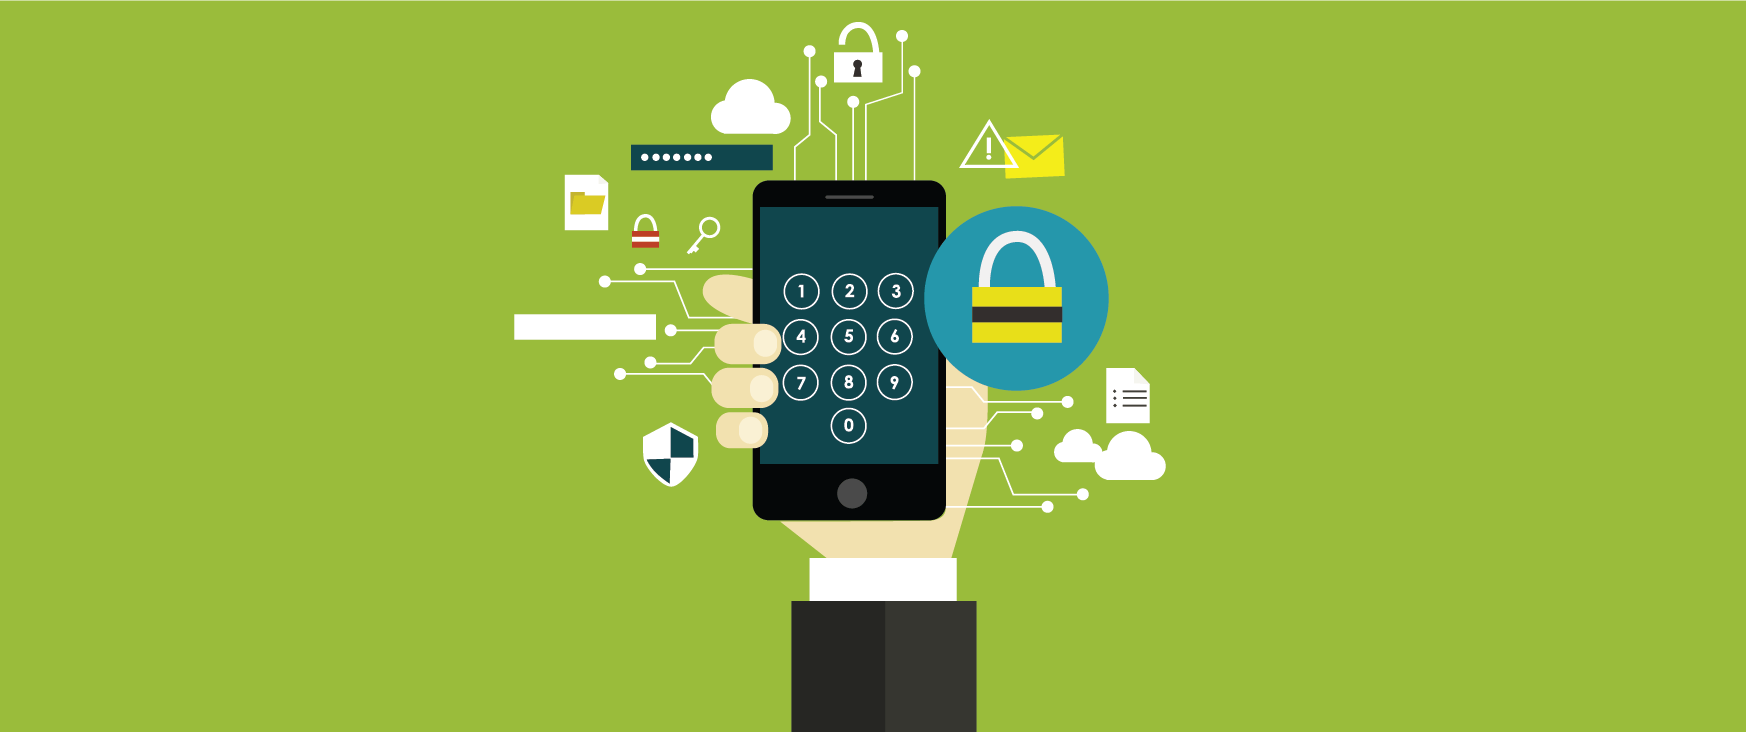 Mobile Endpoint Security – A More Sophisticated Method of Risk Management